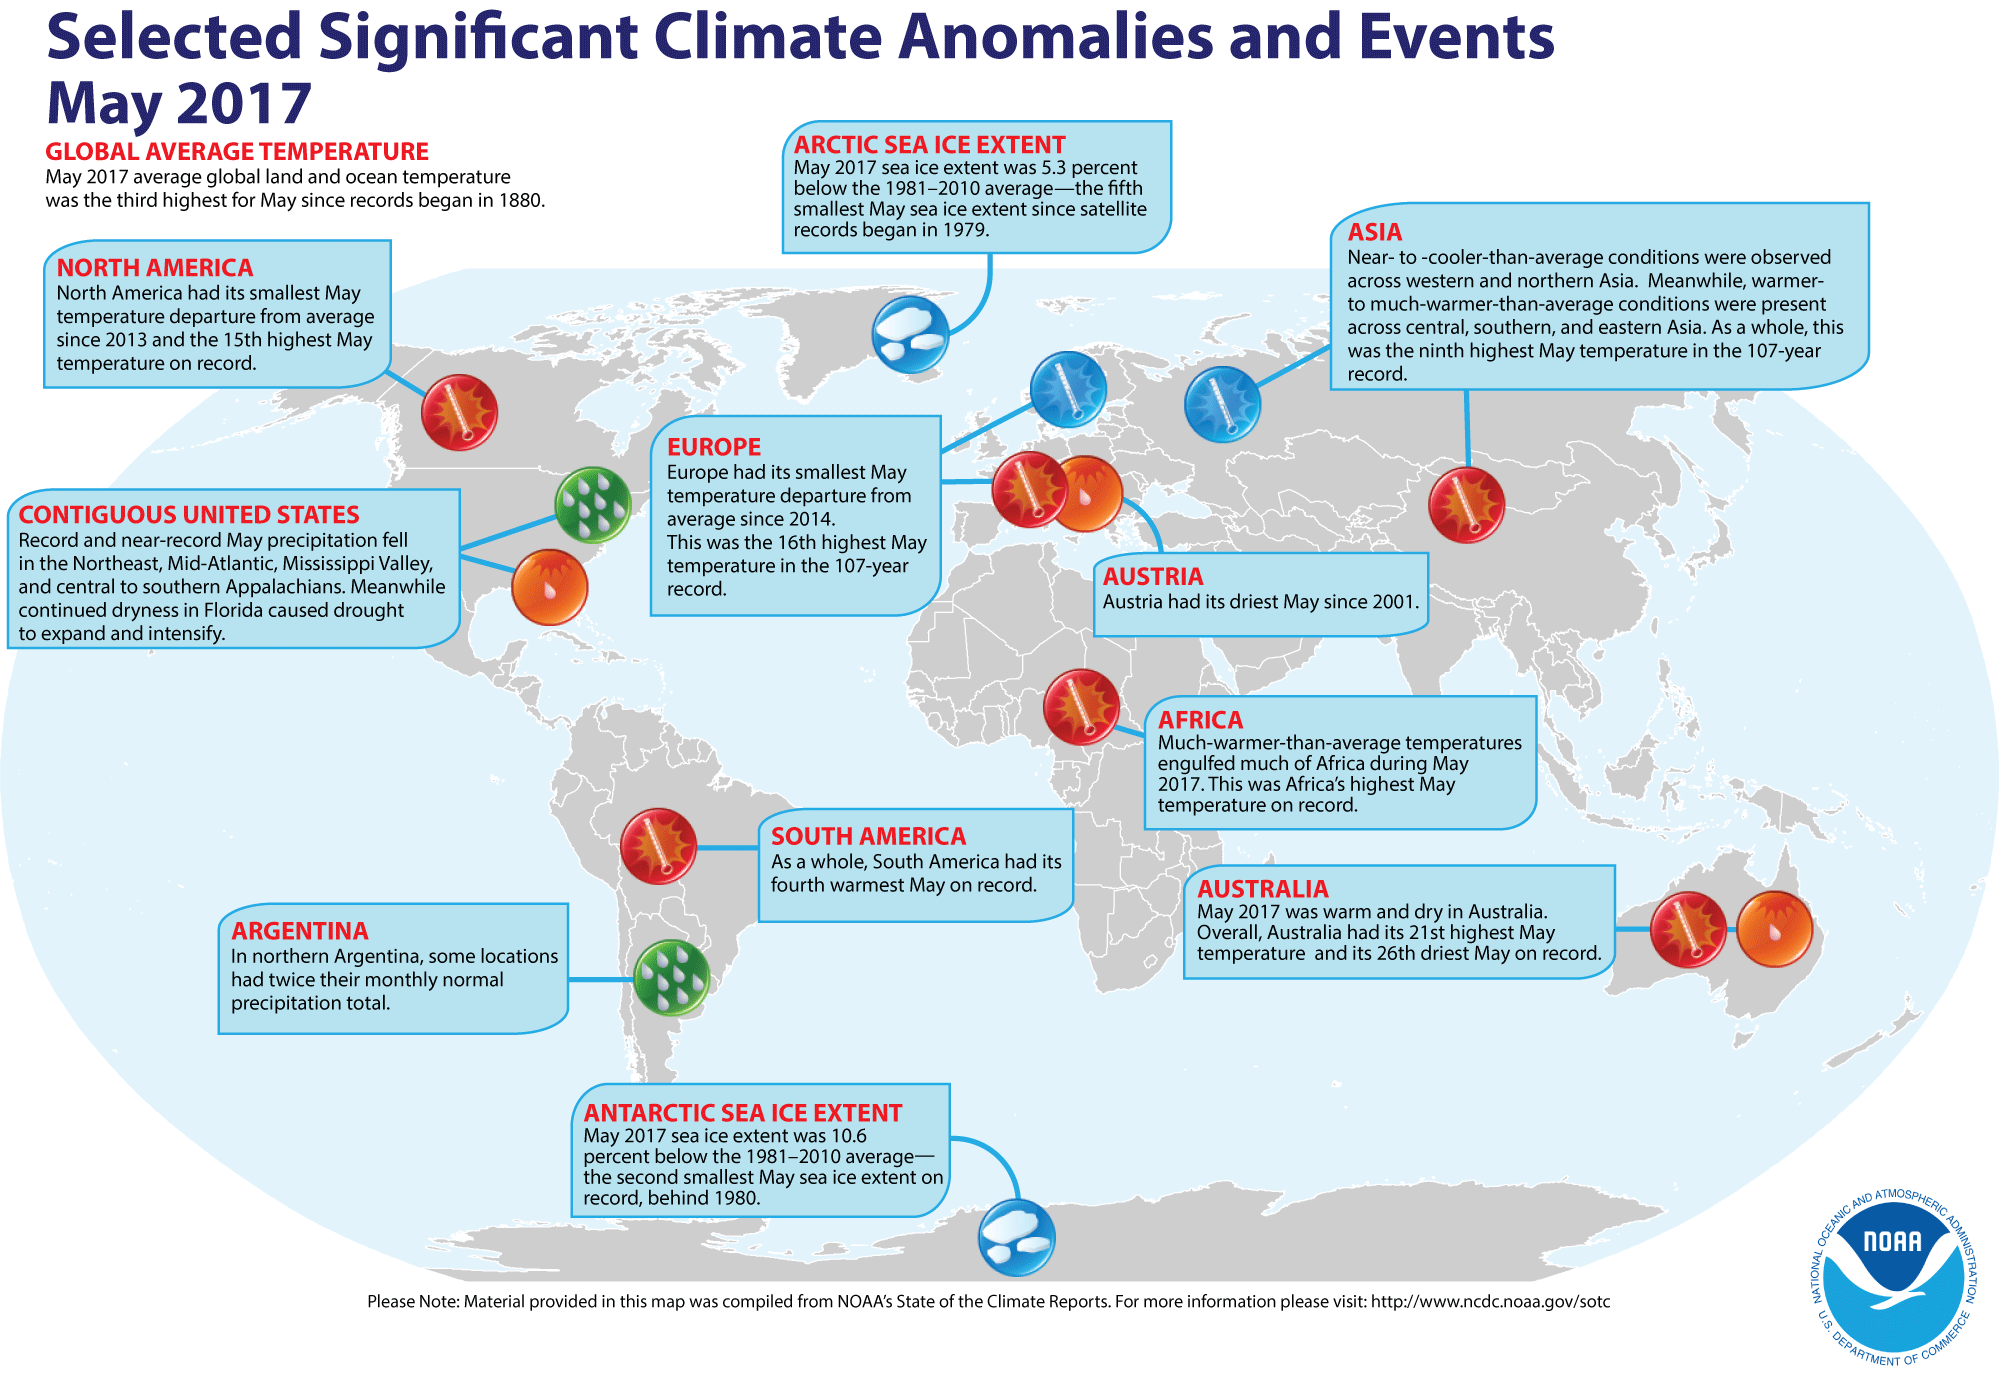 Map of global selected significant climate anomalies and events for May 2017